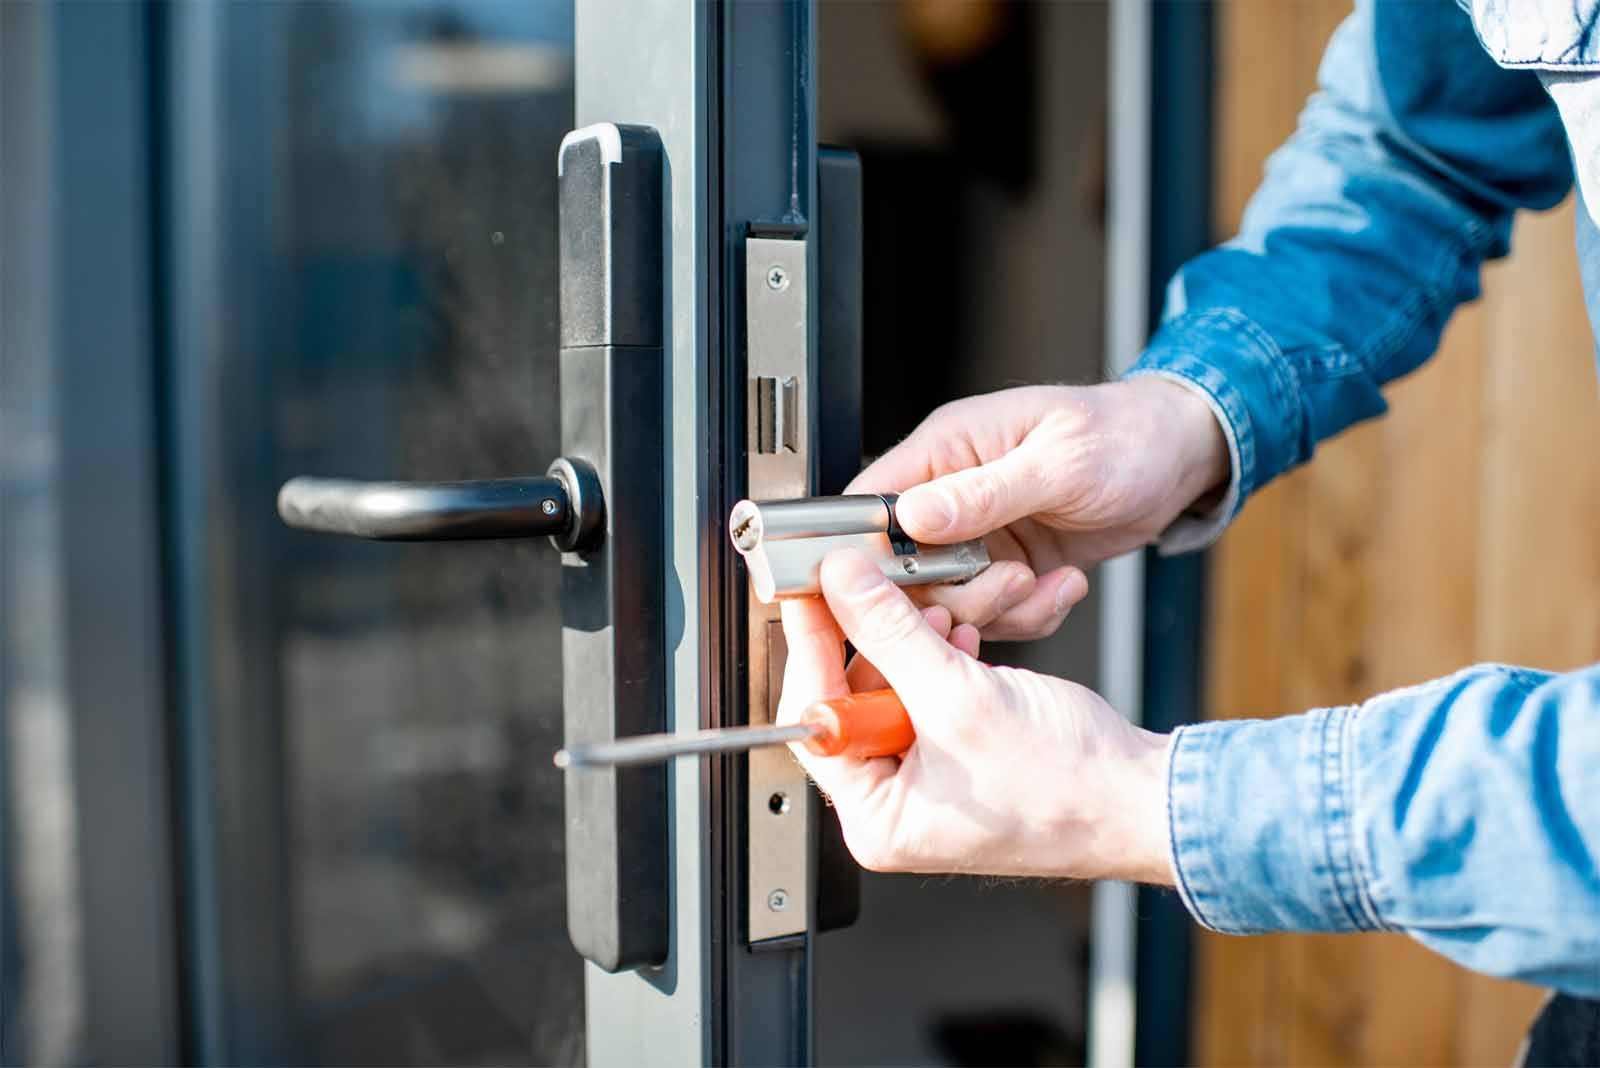 ajax locksmith in Ajax